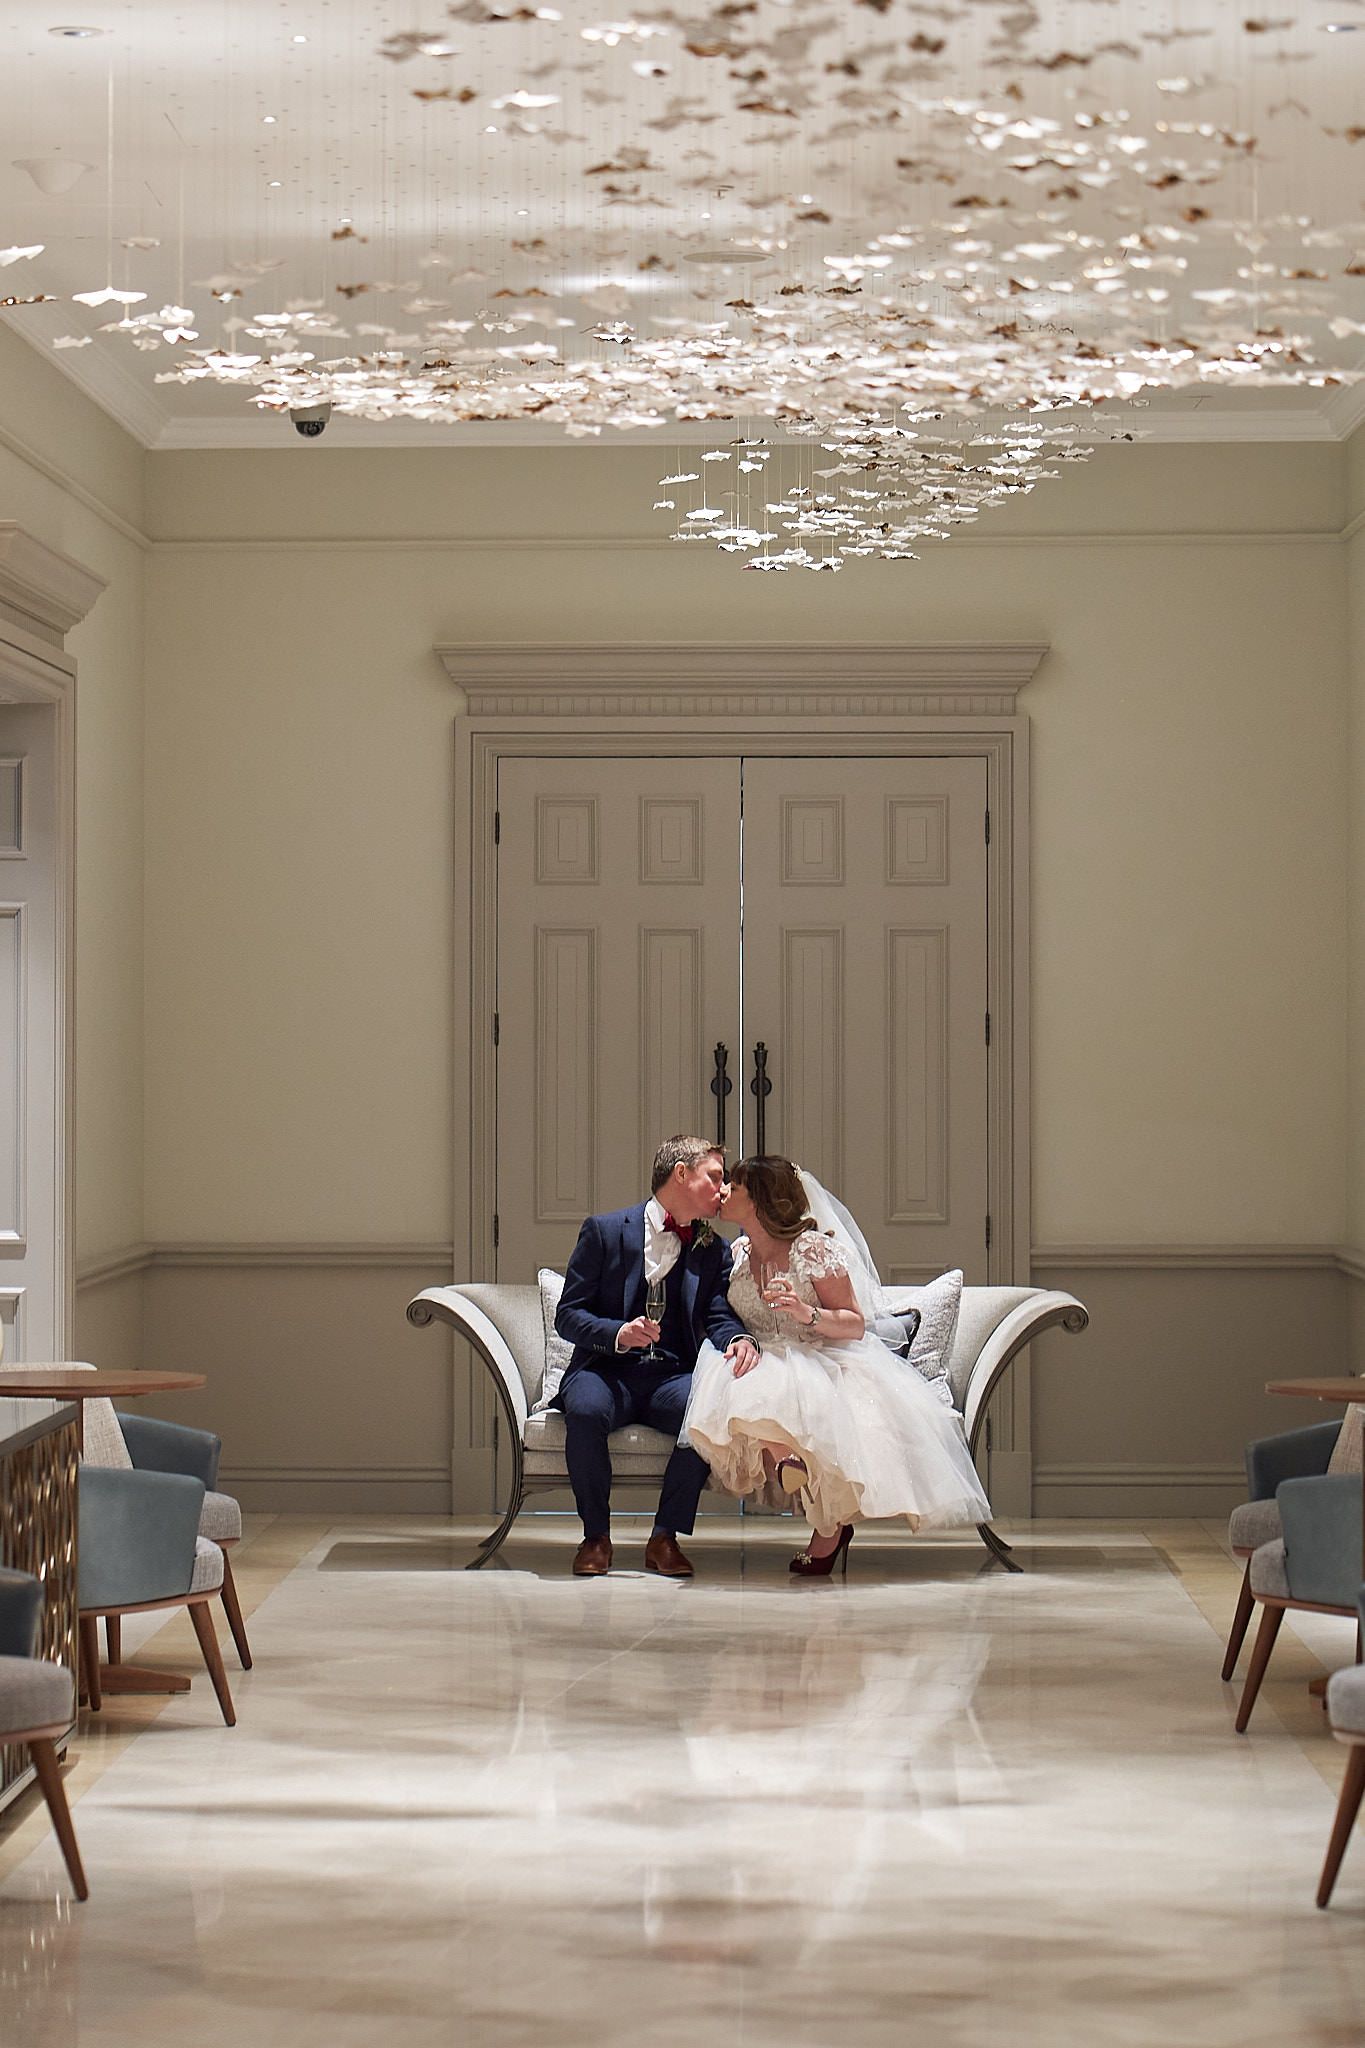 brdie and groom sitting on a sofa at the end of a corridor at four seasons hotel hampshire